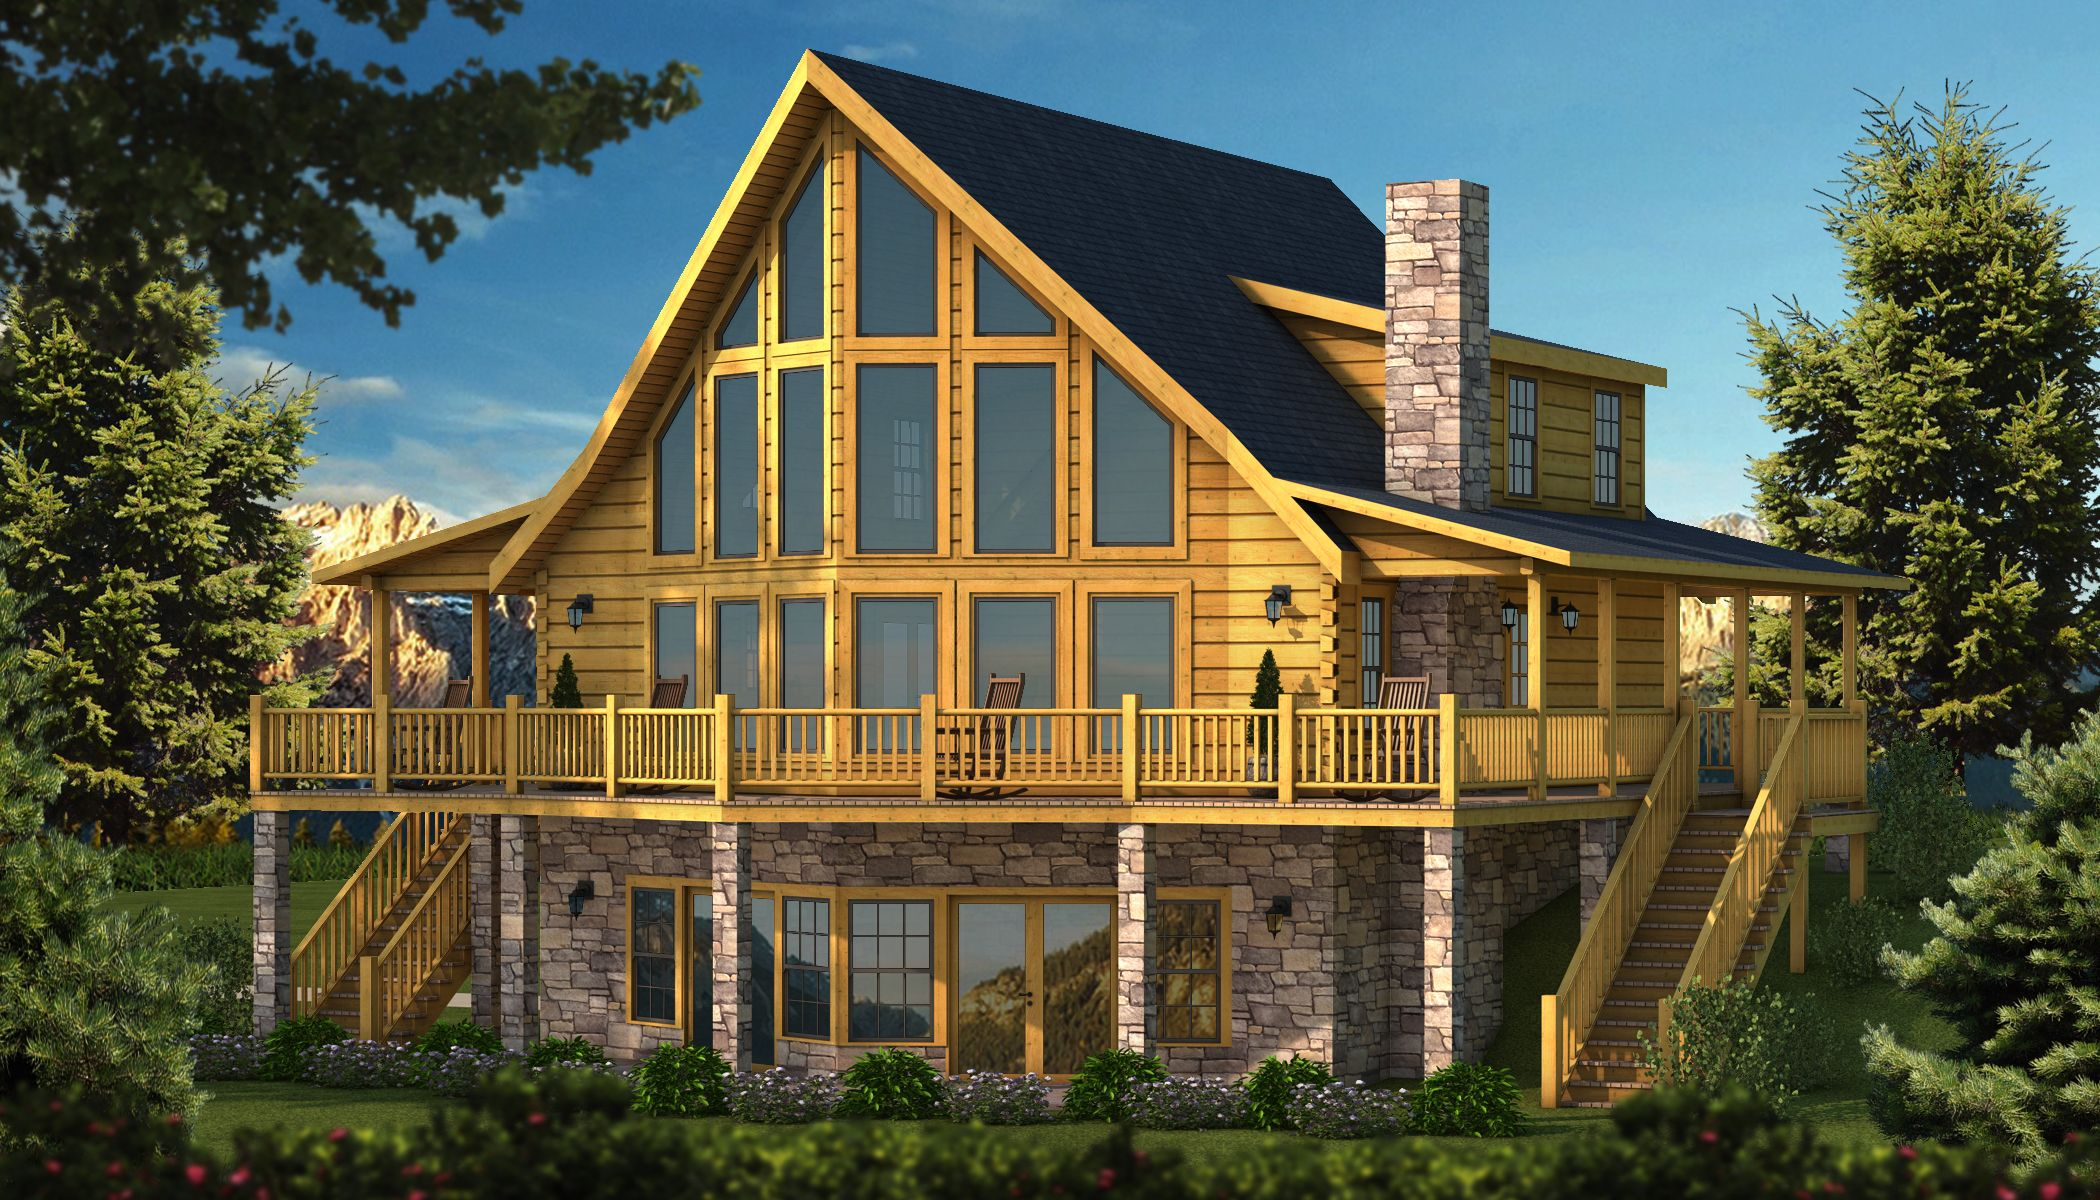 The Henderson Is One Of Many Log Cabin Home Plans From Southland Homes You Can Customize To Meet Your Exact Needs With Our Free